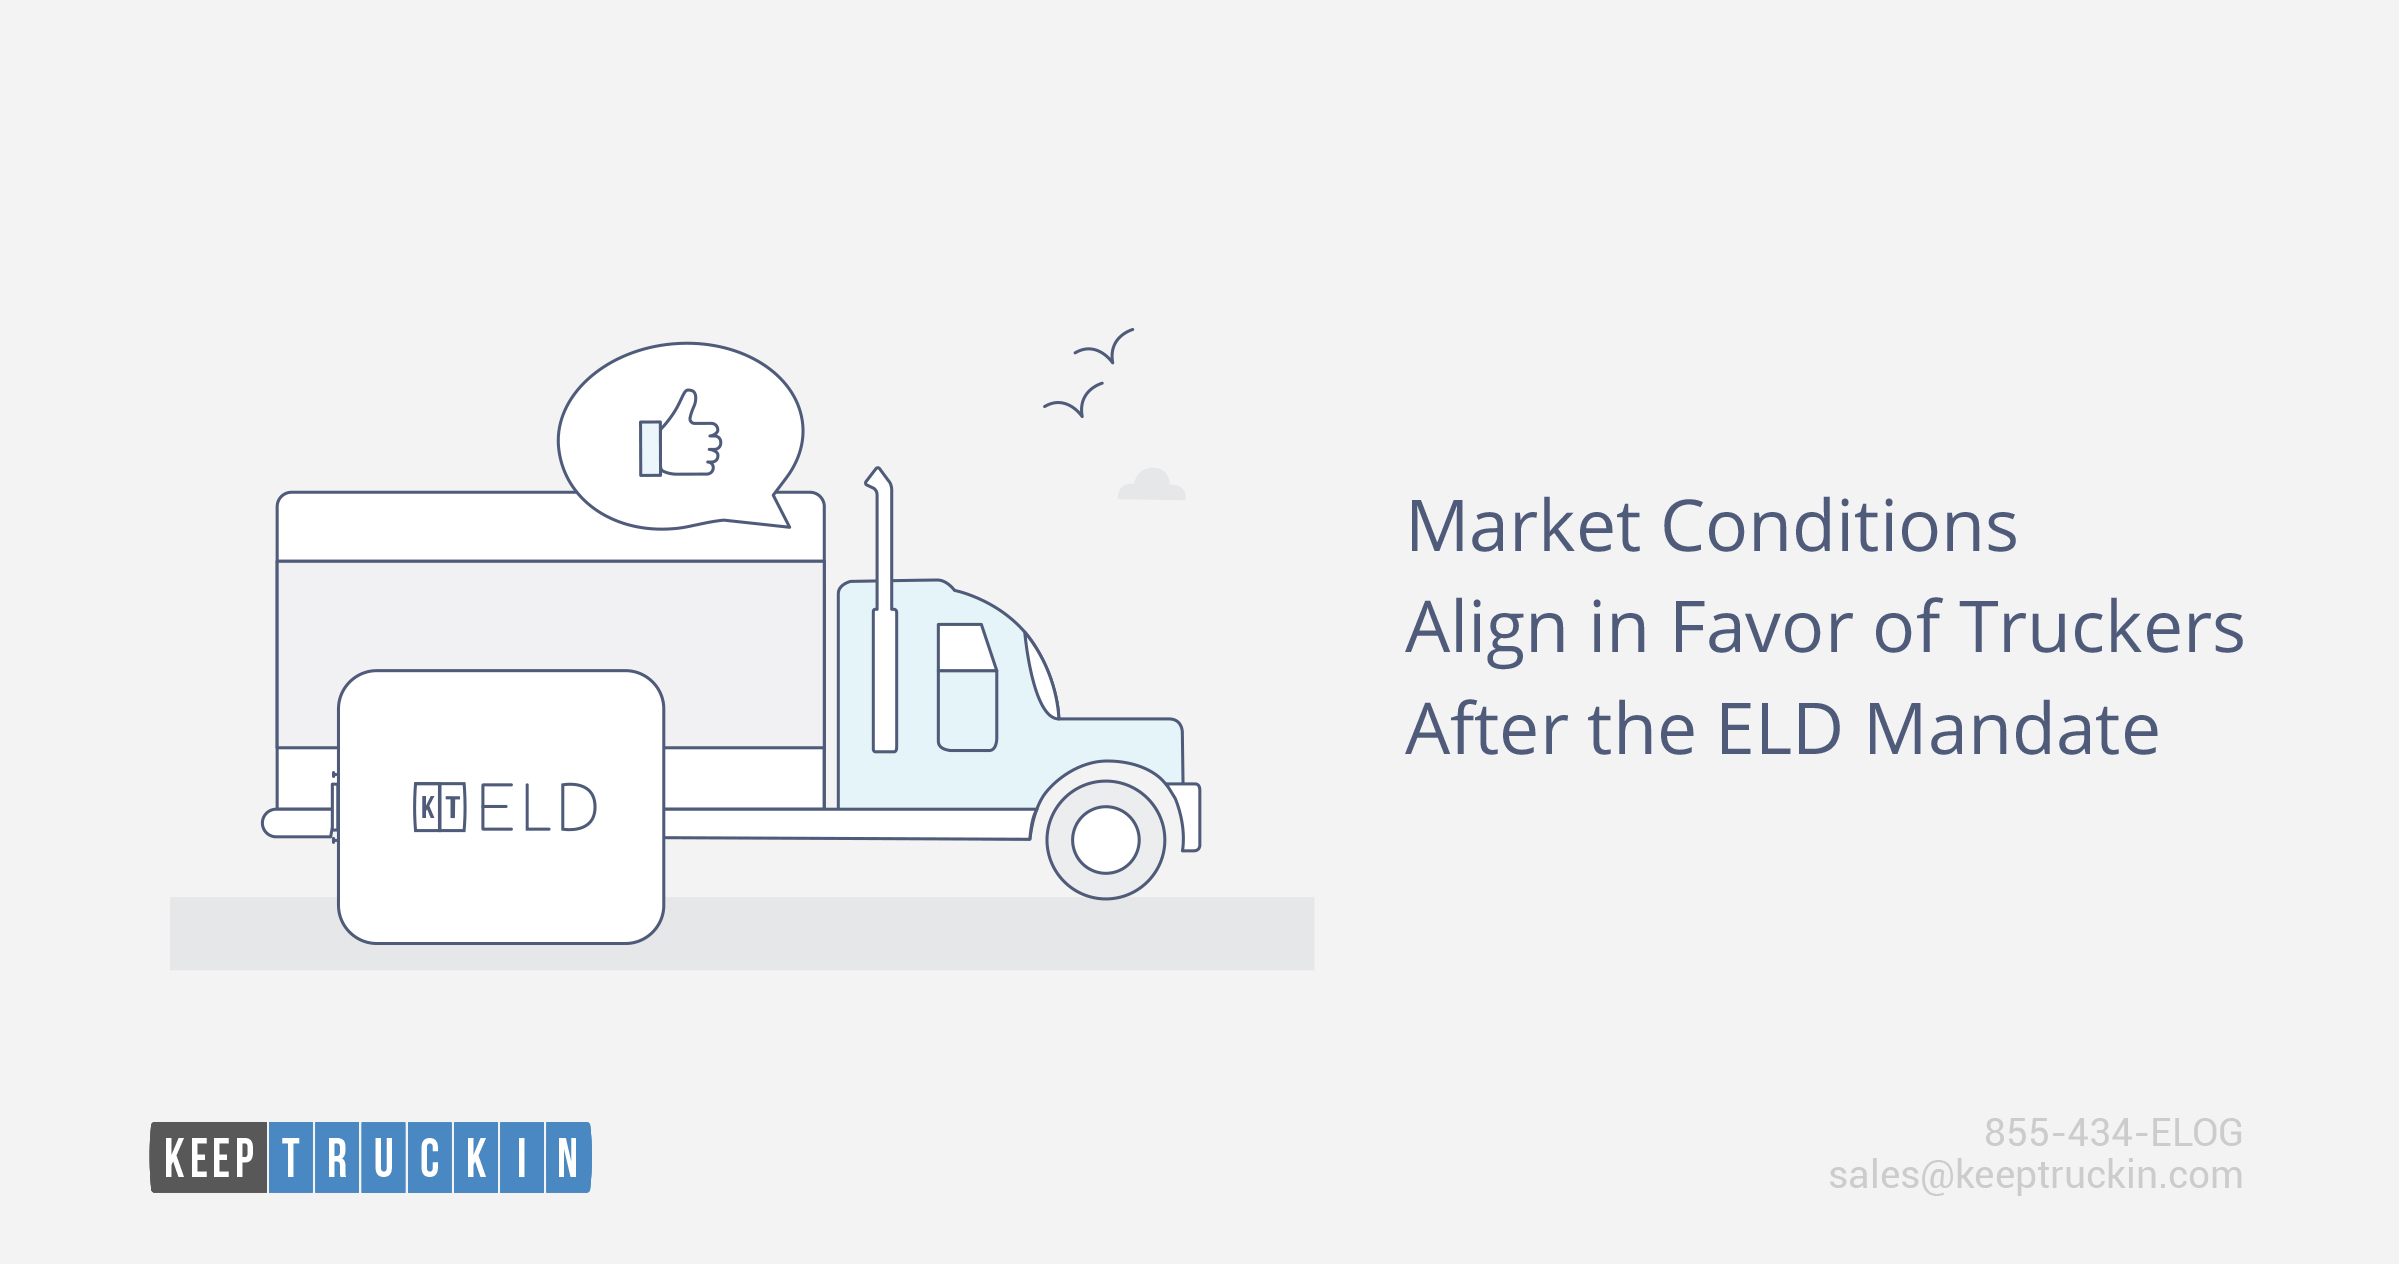 Market conditions align in favor of truckers after the ELD mandate